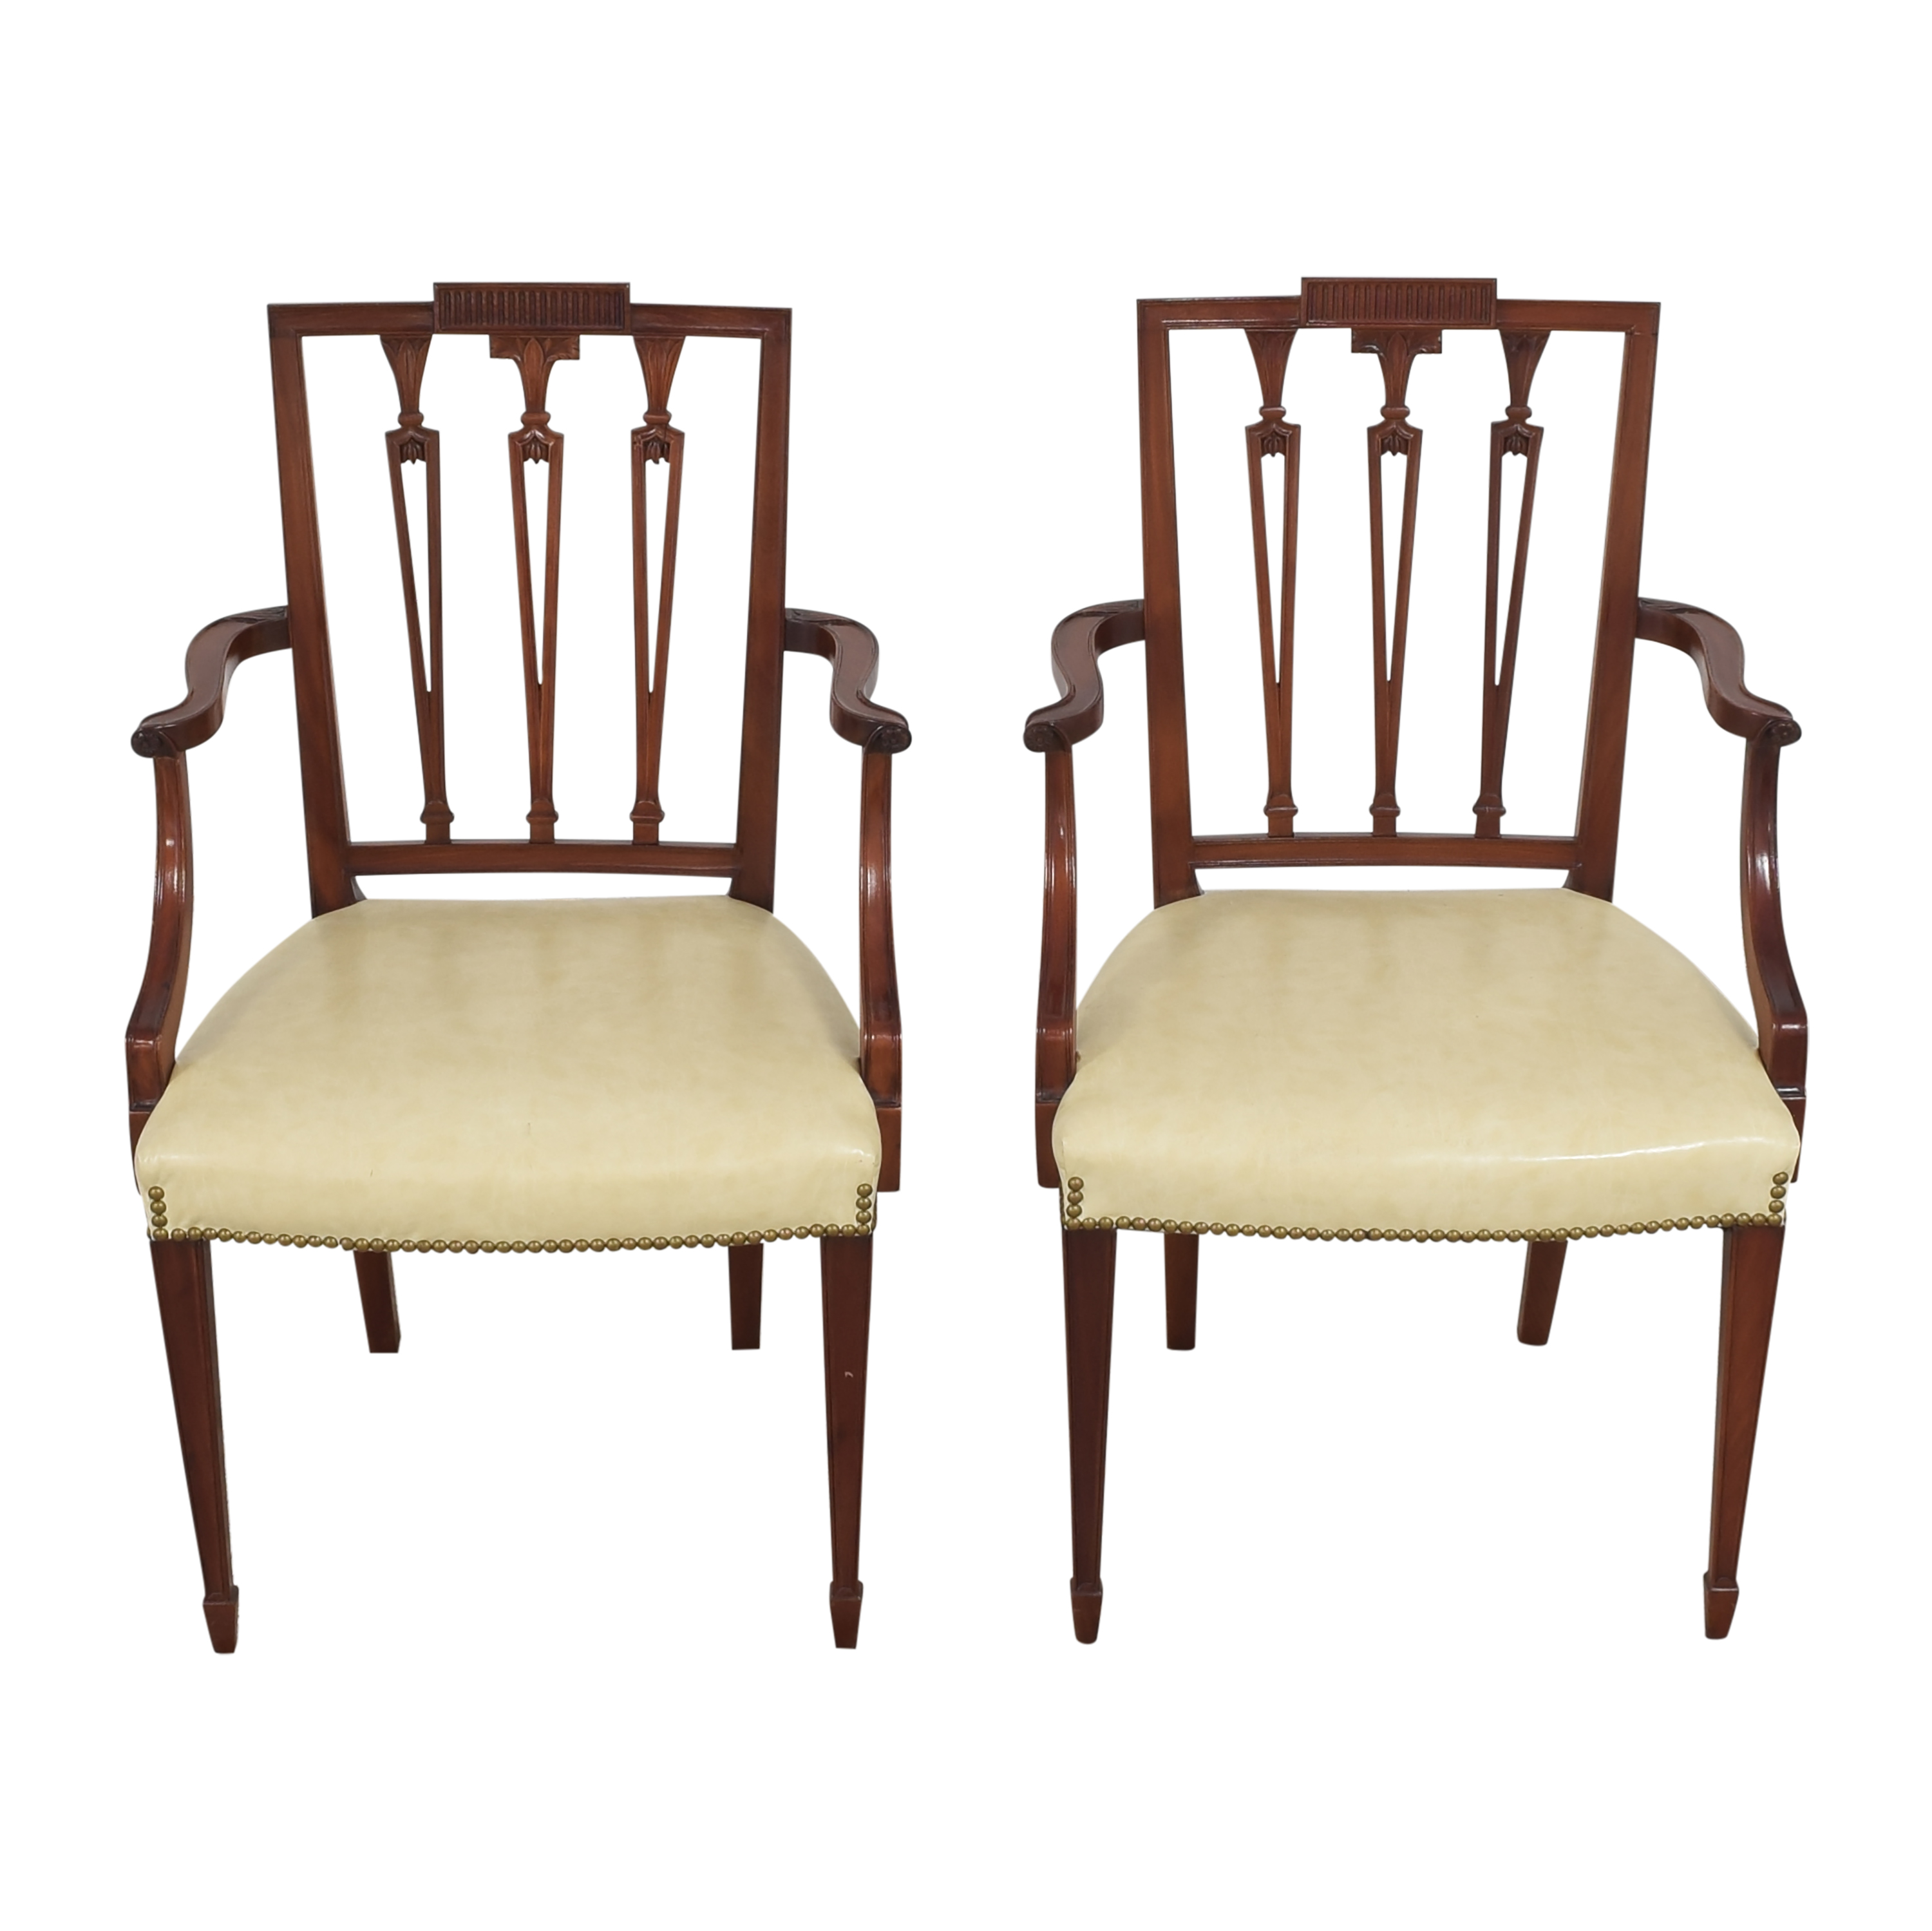 Upholstered Dining Arm Chairs for sale